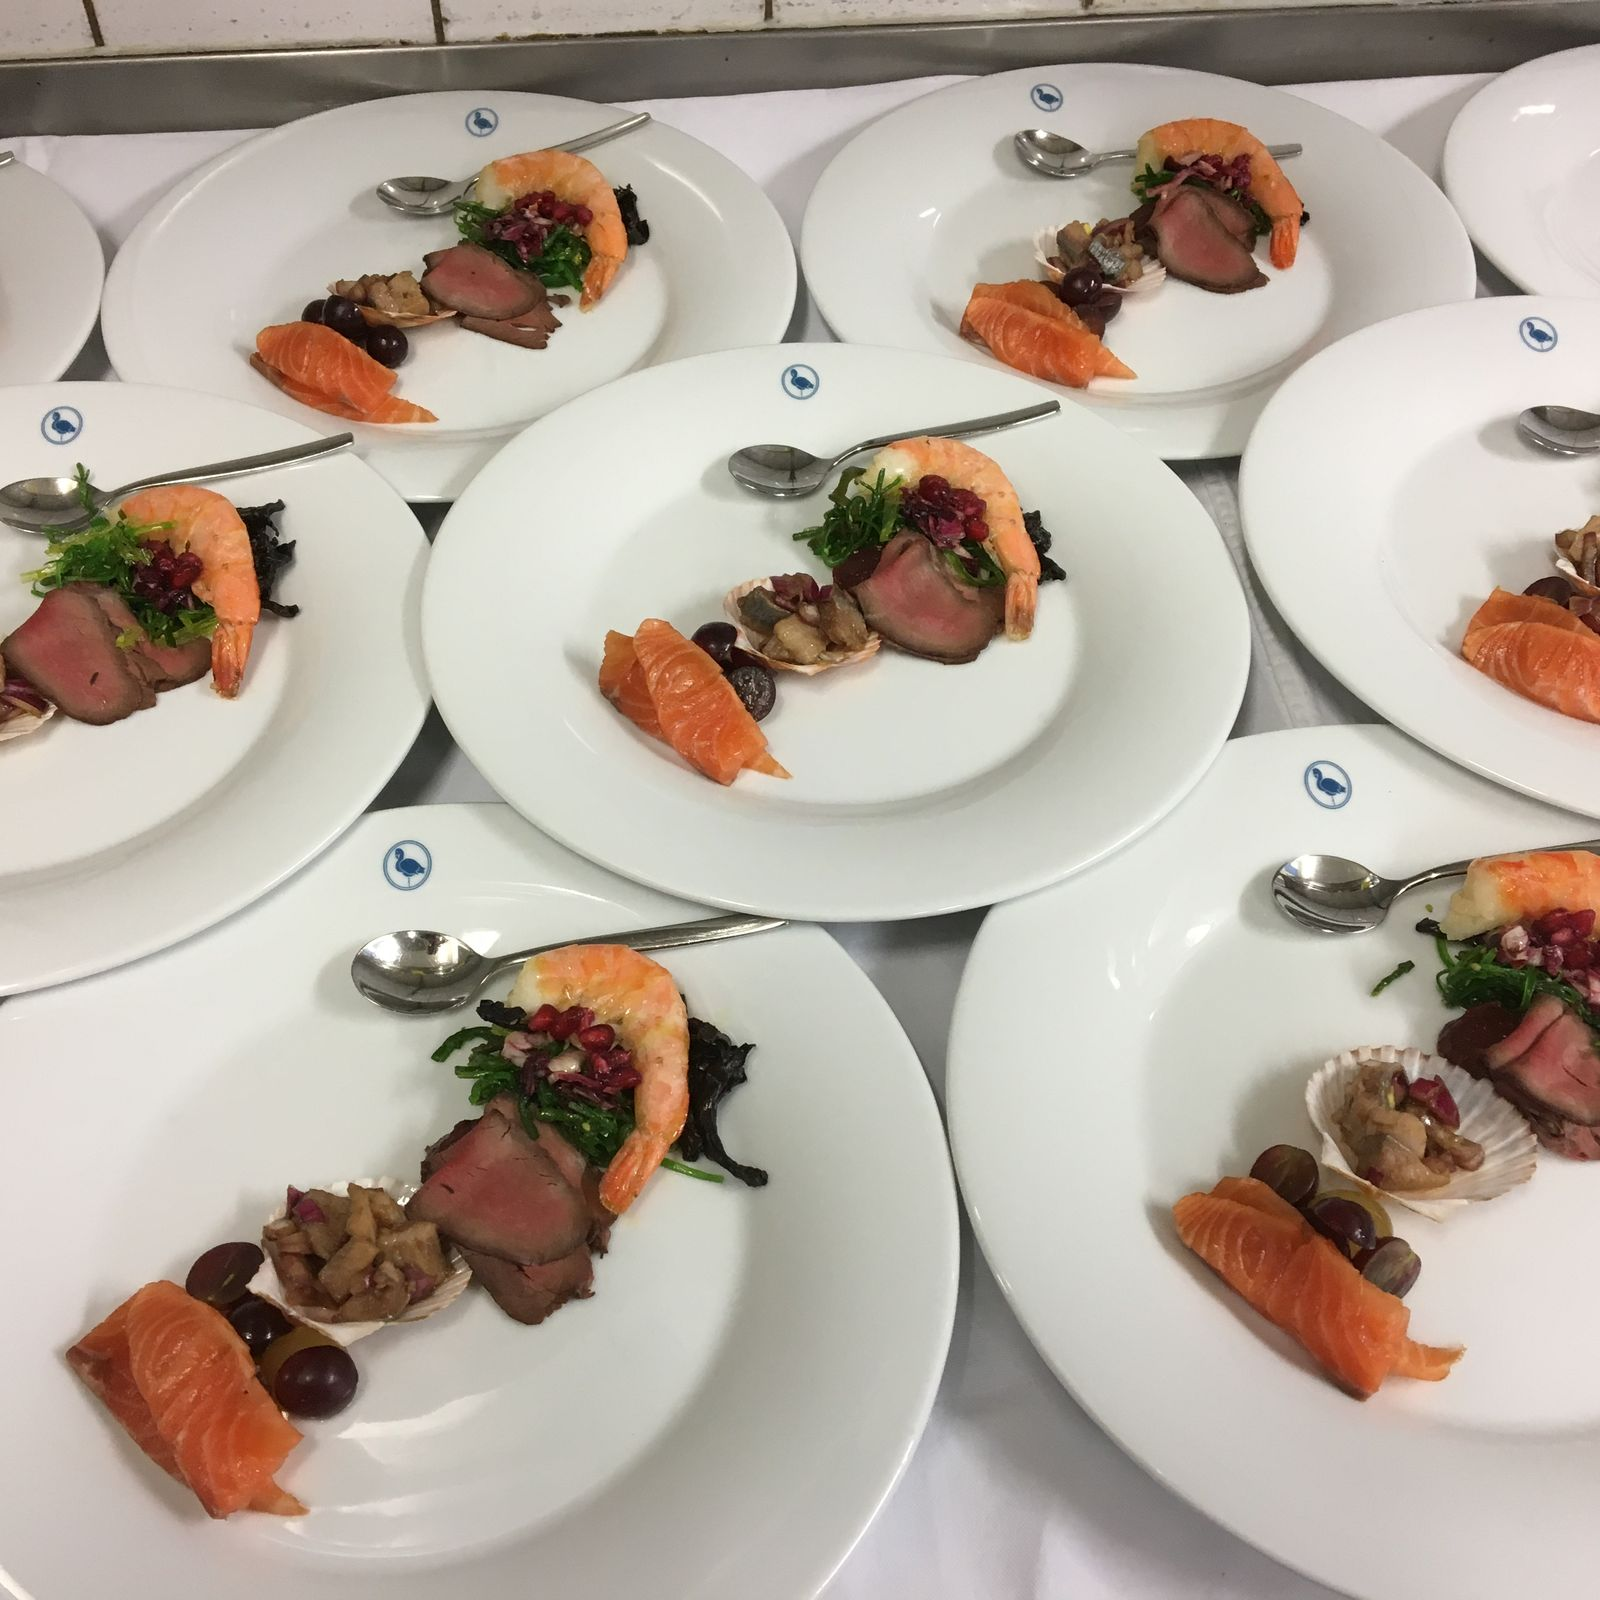 Cateringanfrage -